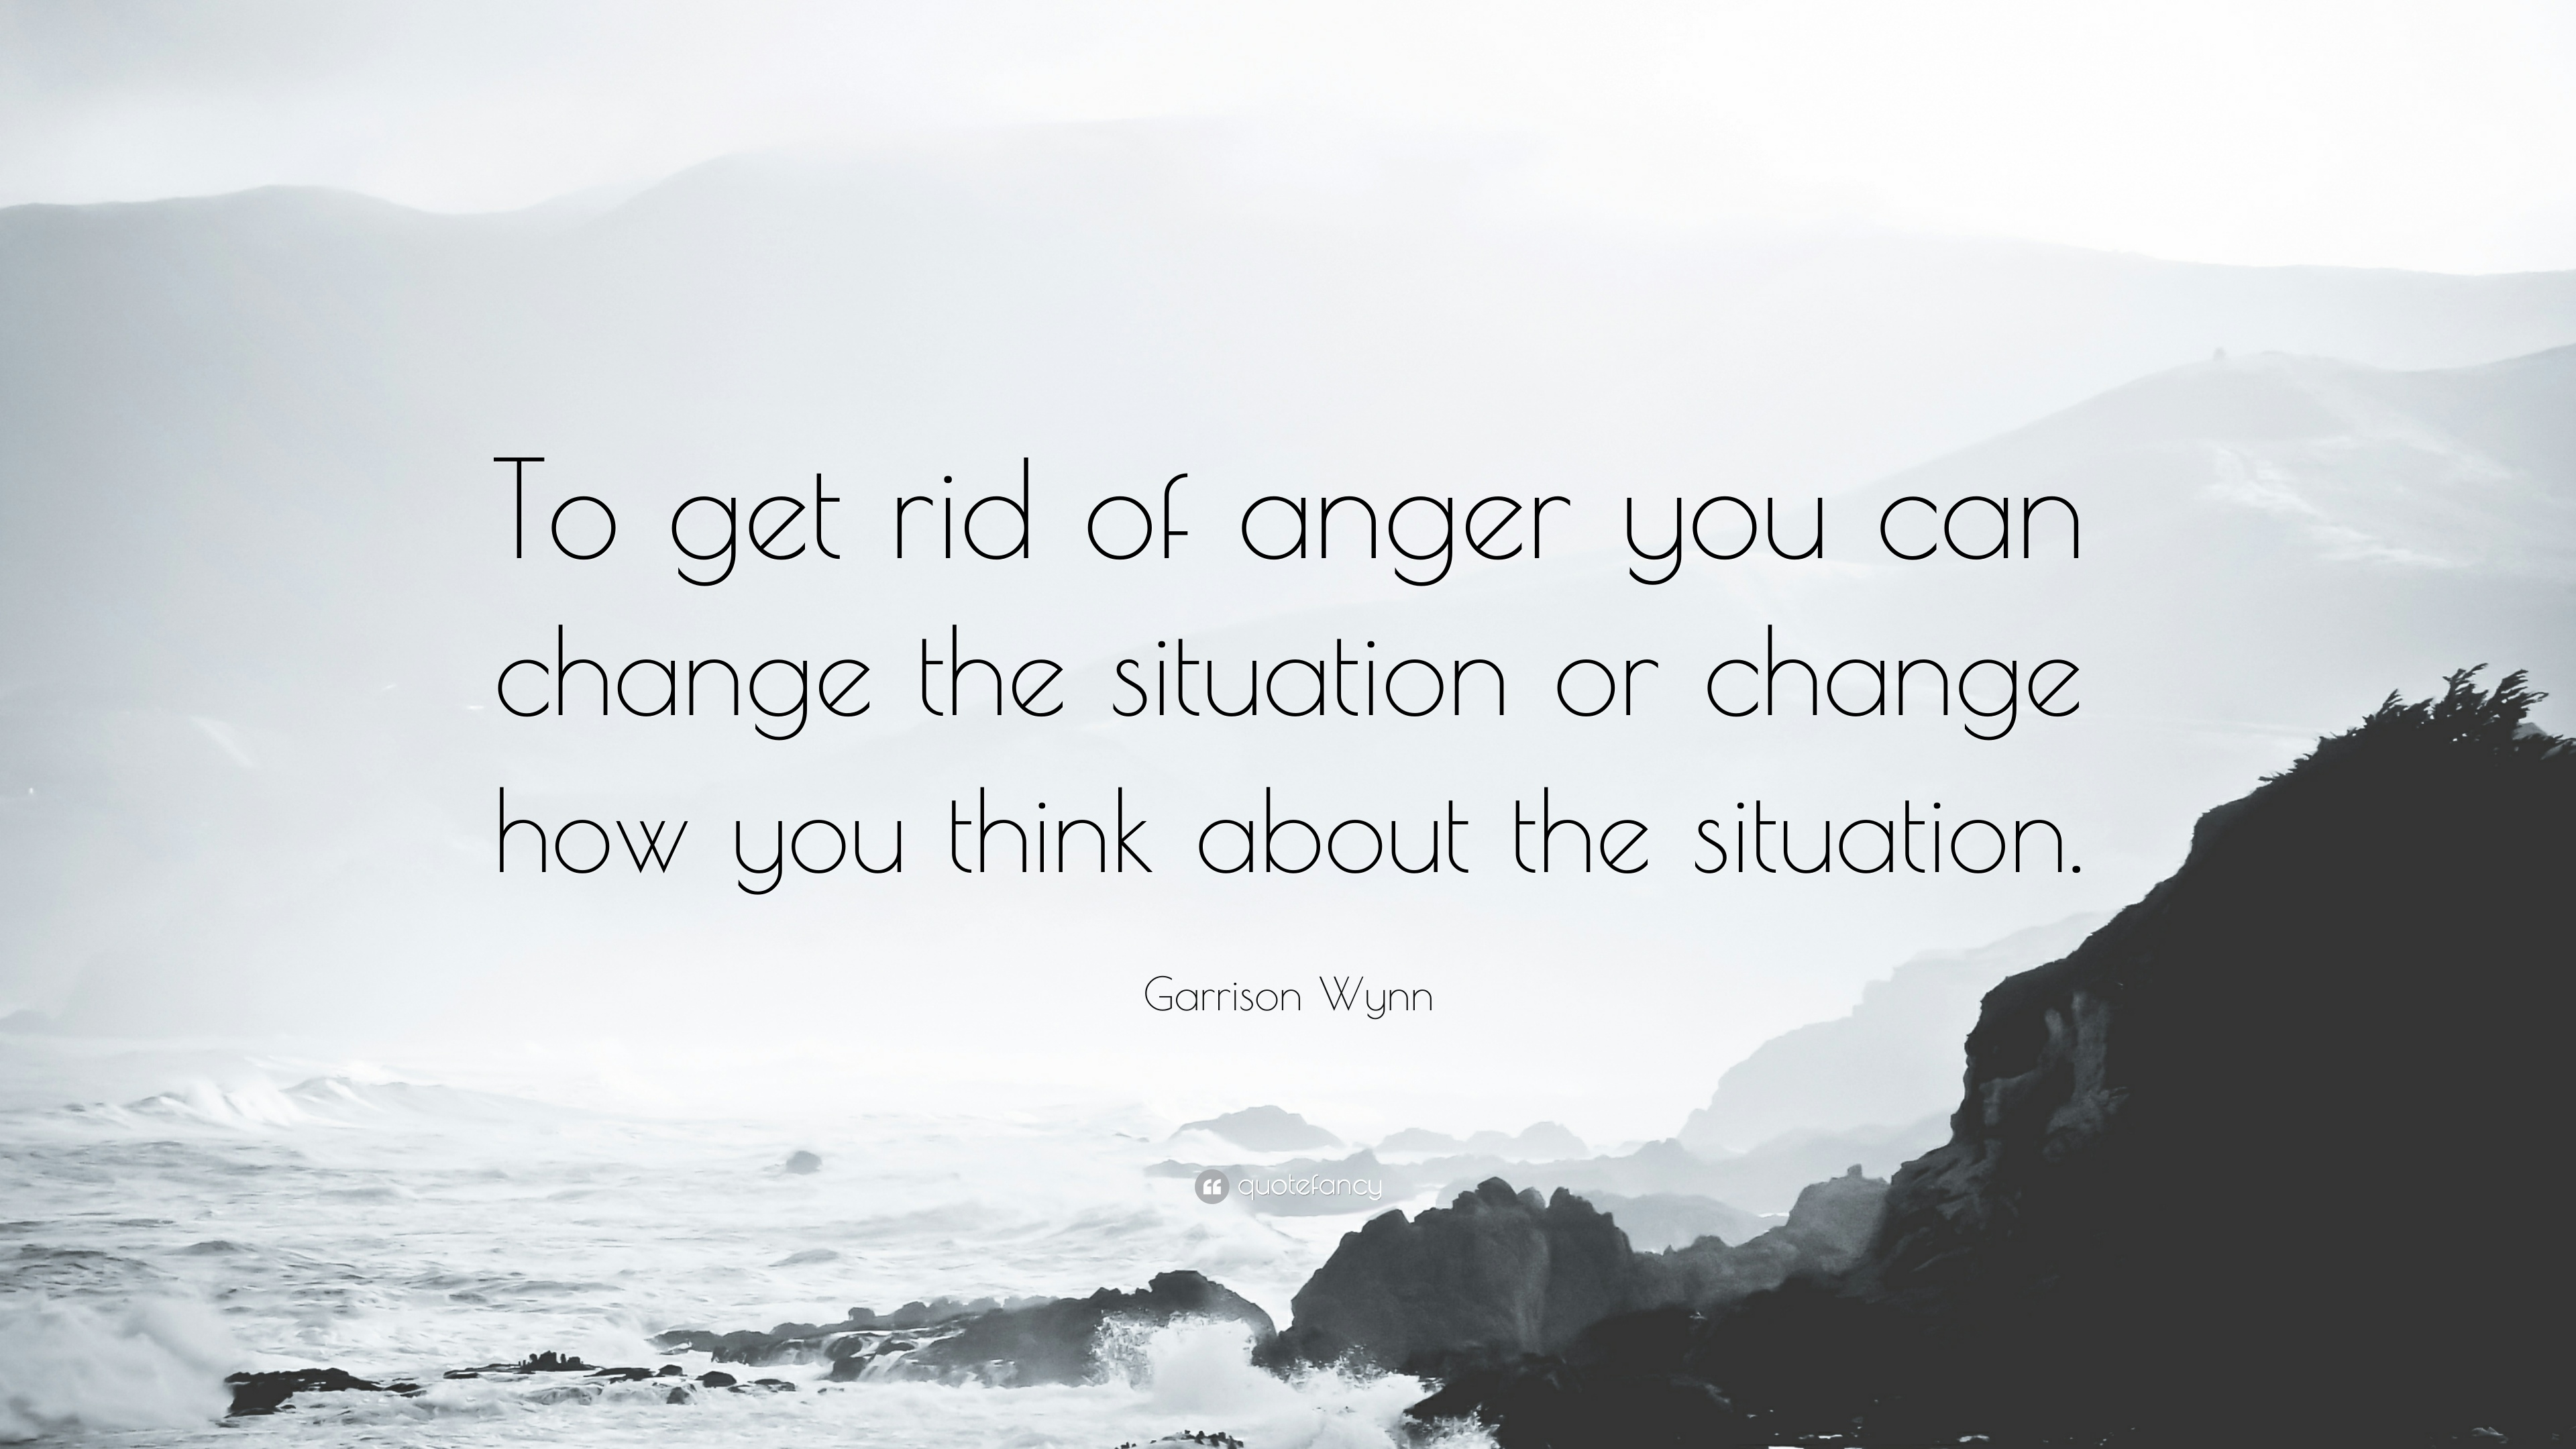 Getting rid of anger